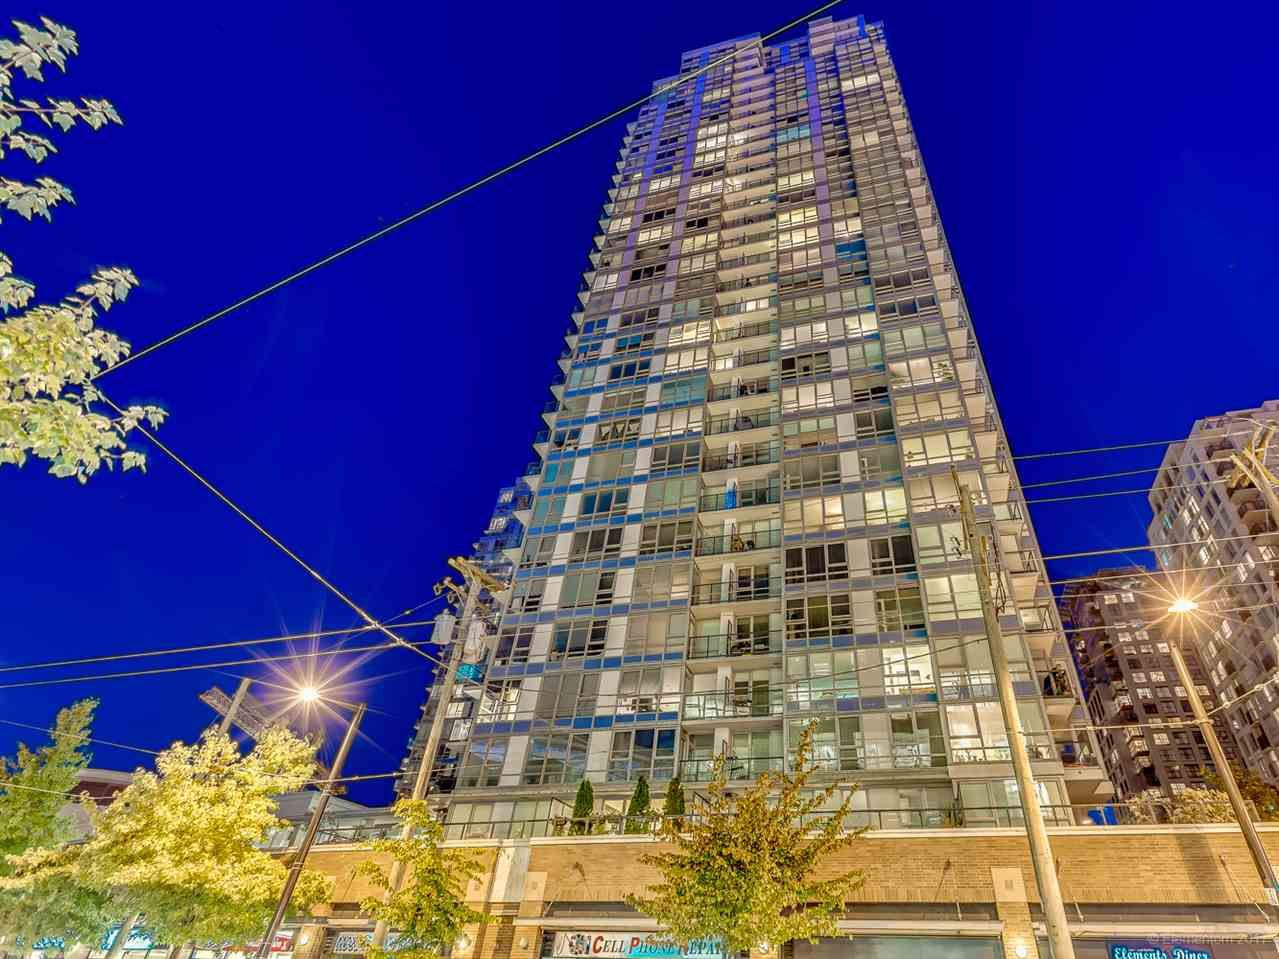 """Main Photo: 1811 928 BEATTY Street in Vancouver: Yaletown Condo for sale in """"YALETOWN"""" (Vancouver West)  : MLS®# R2210928"""